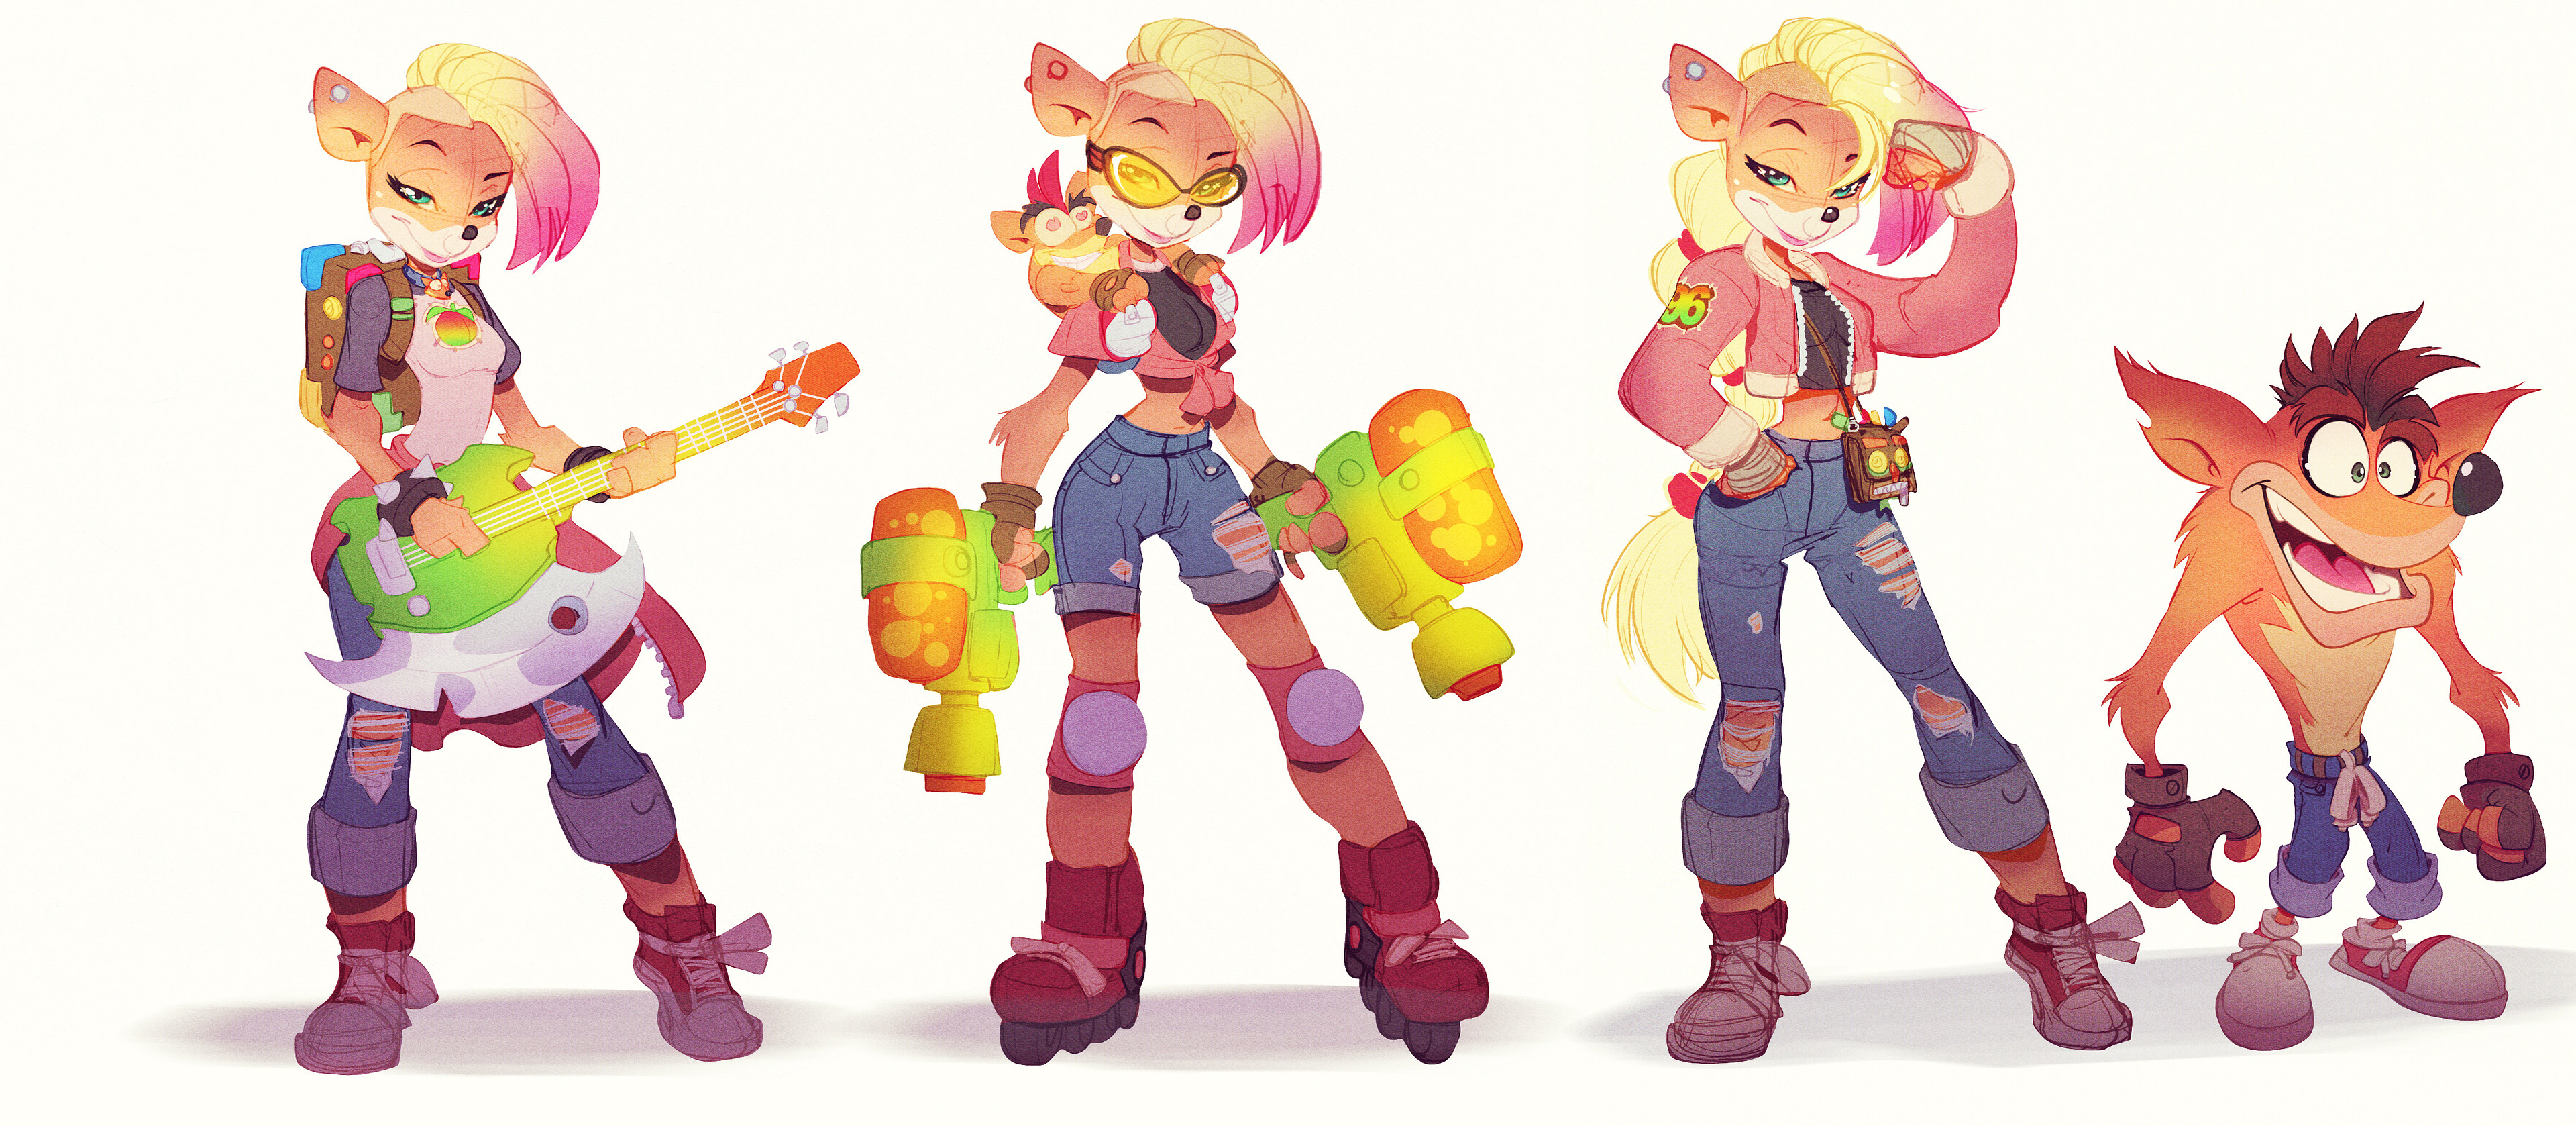 Early Crash 4 concept development. Here's an early takes I did on Tawna! I can't share everything but what I can, I will...